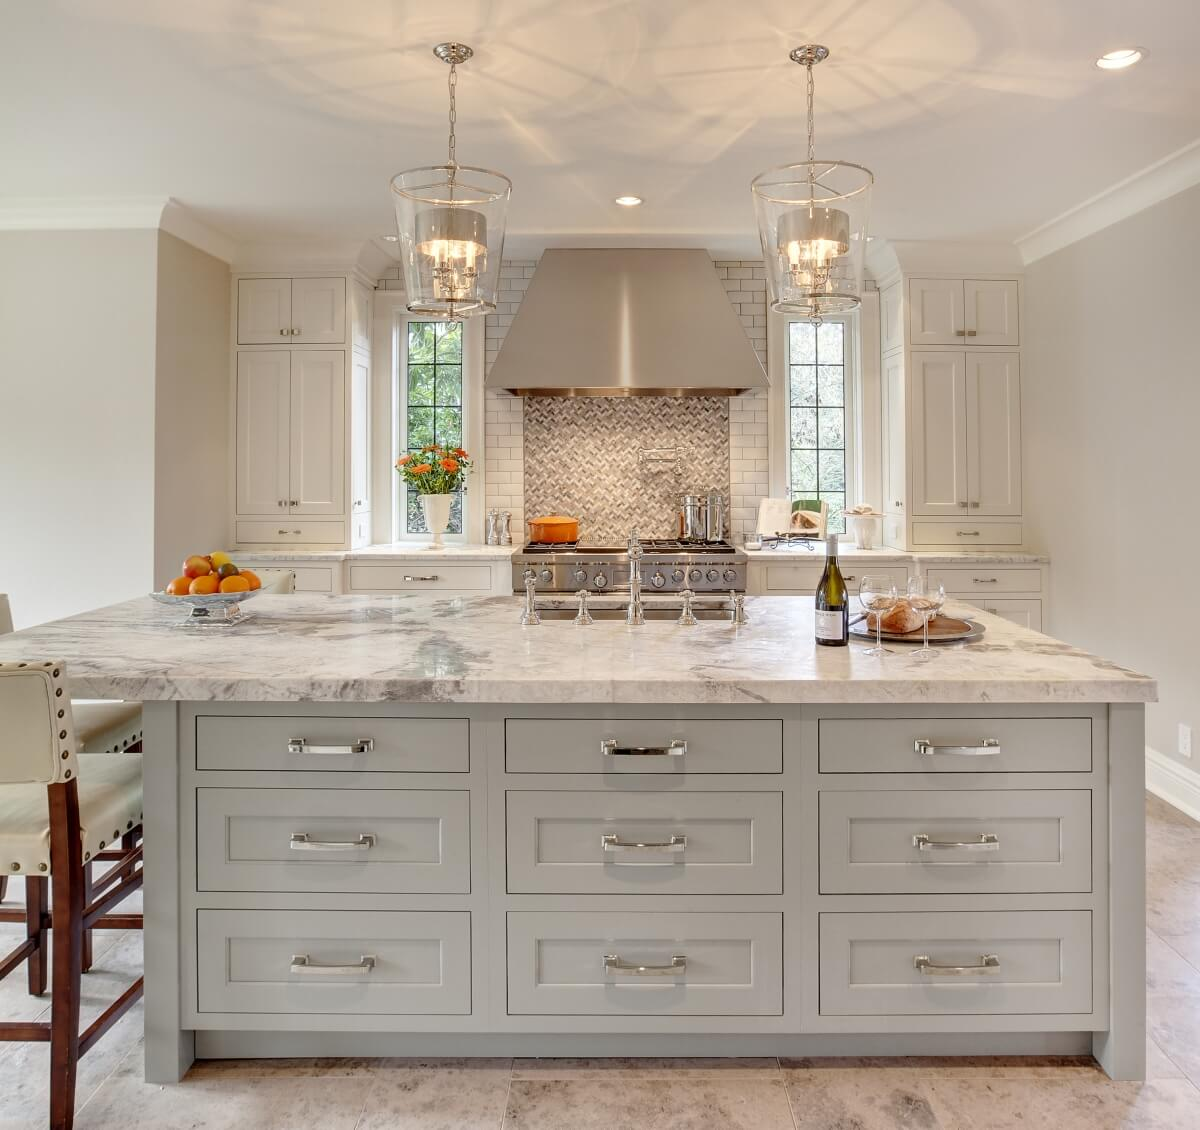 Dura Supreme Cabinetry kitchen design by Beverly Bradshaw Interiors, photography by Tom Marks Photo, cabinetry by Collaborative Interiors. Showcasing Dura Supreme Cabinetry in the Classic White and Zinc painted finishes.